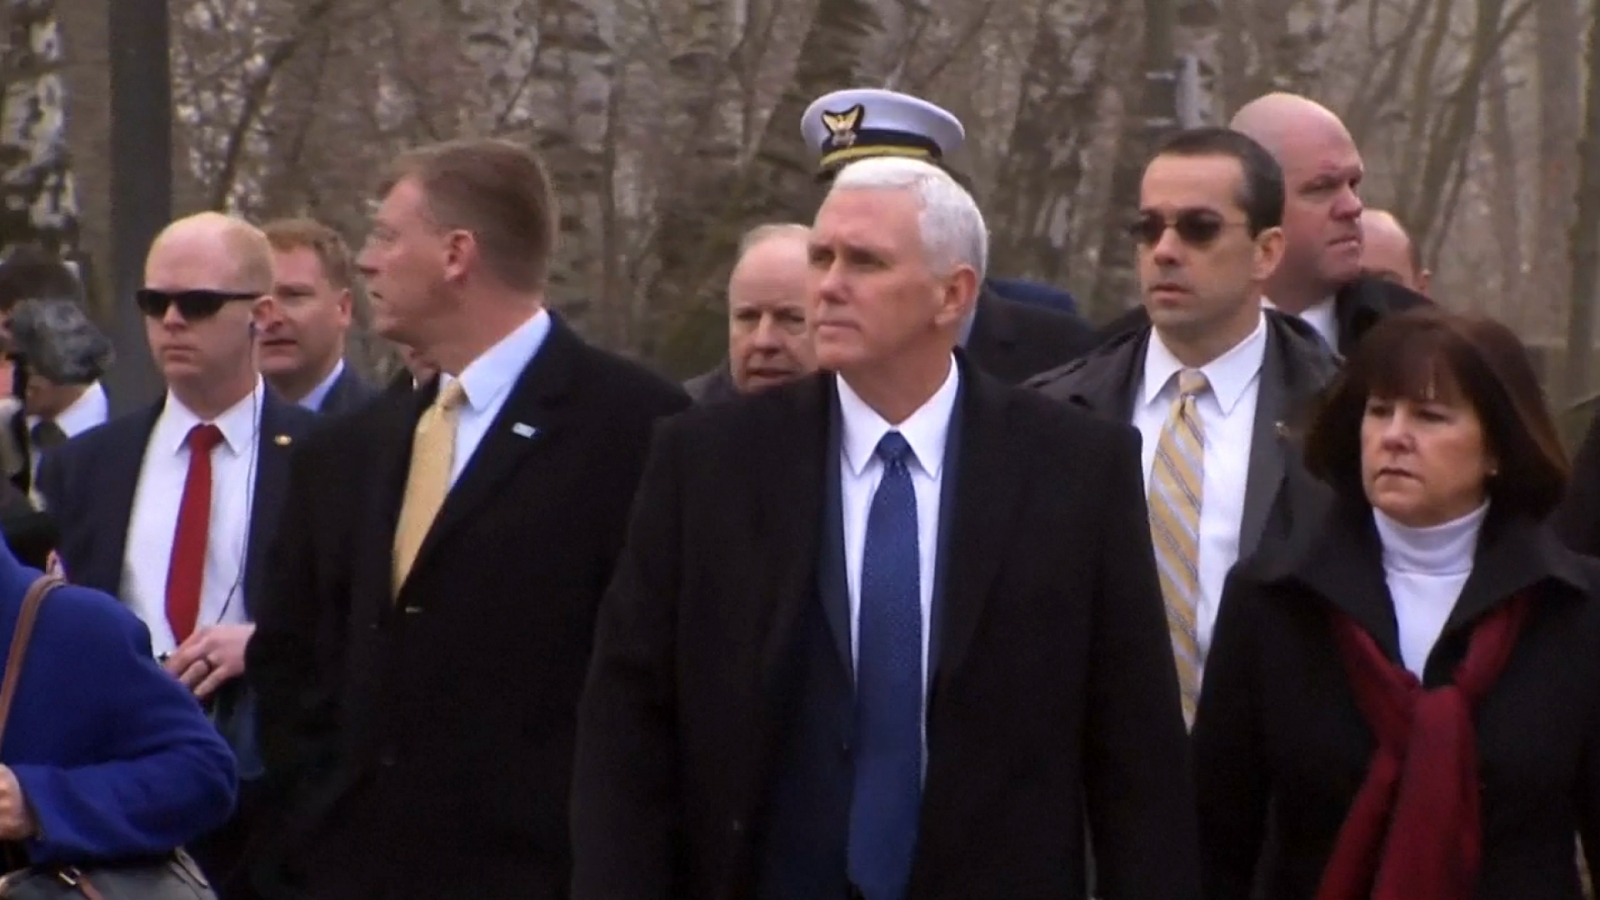 Mike Pence visits Dachau concentration camp